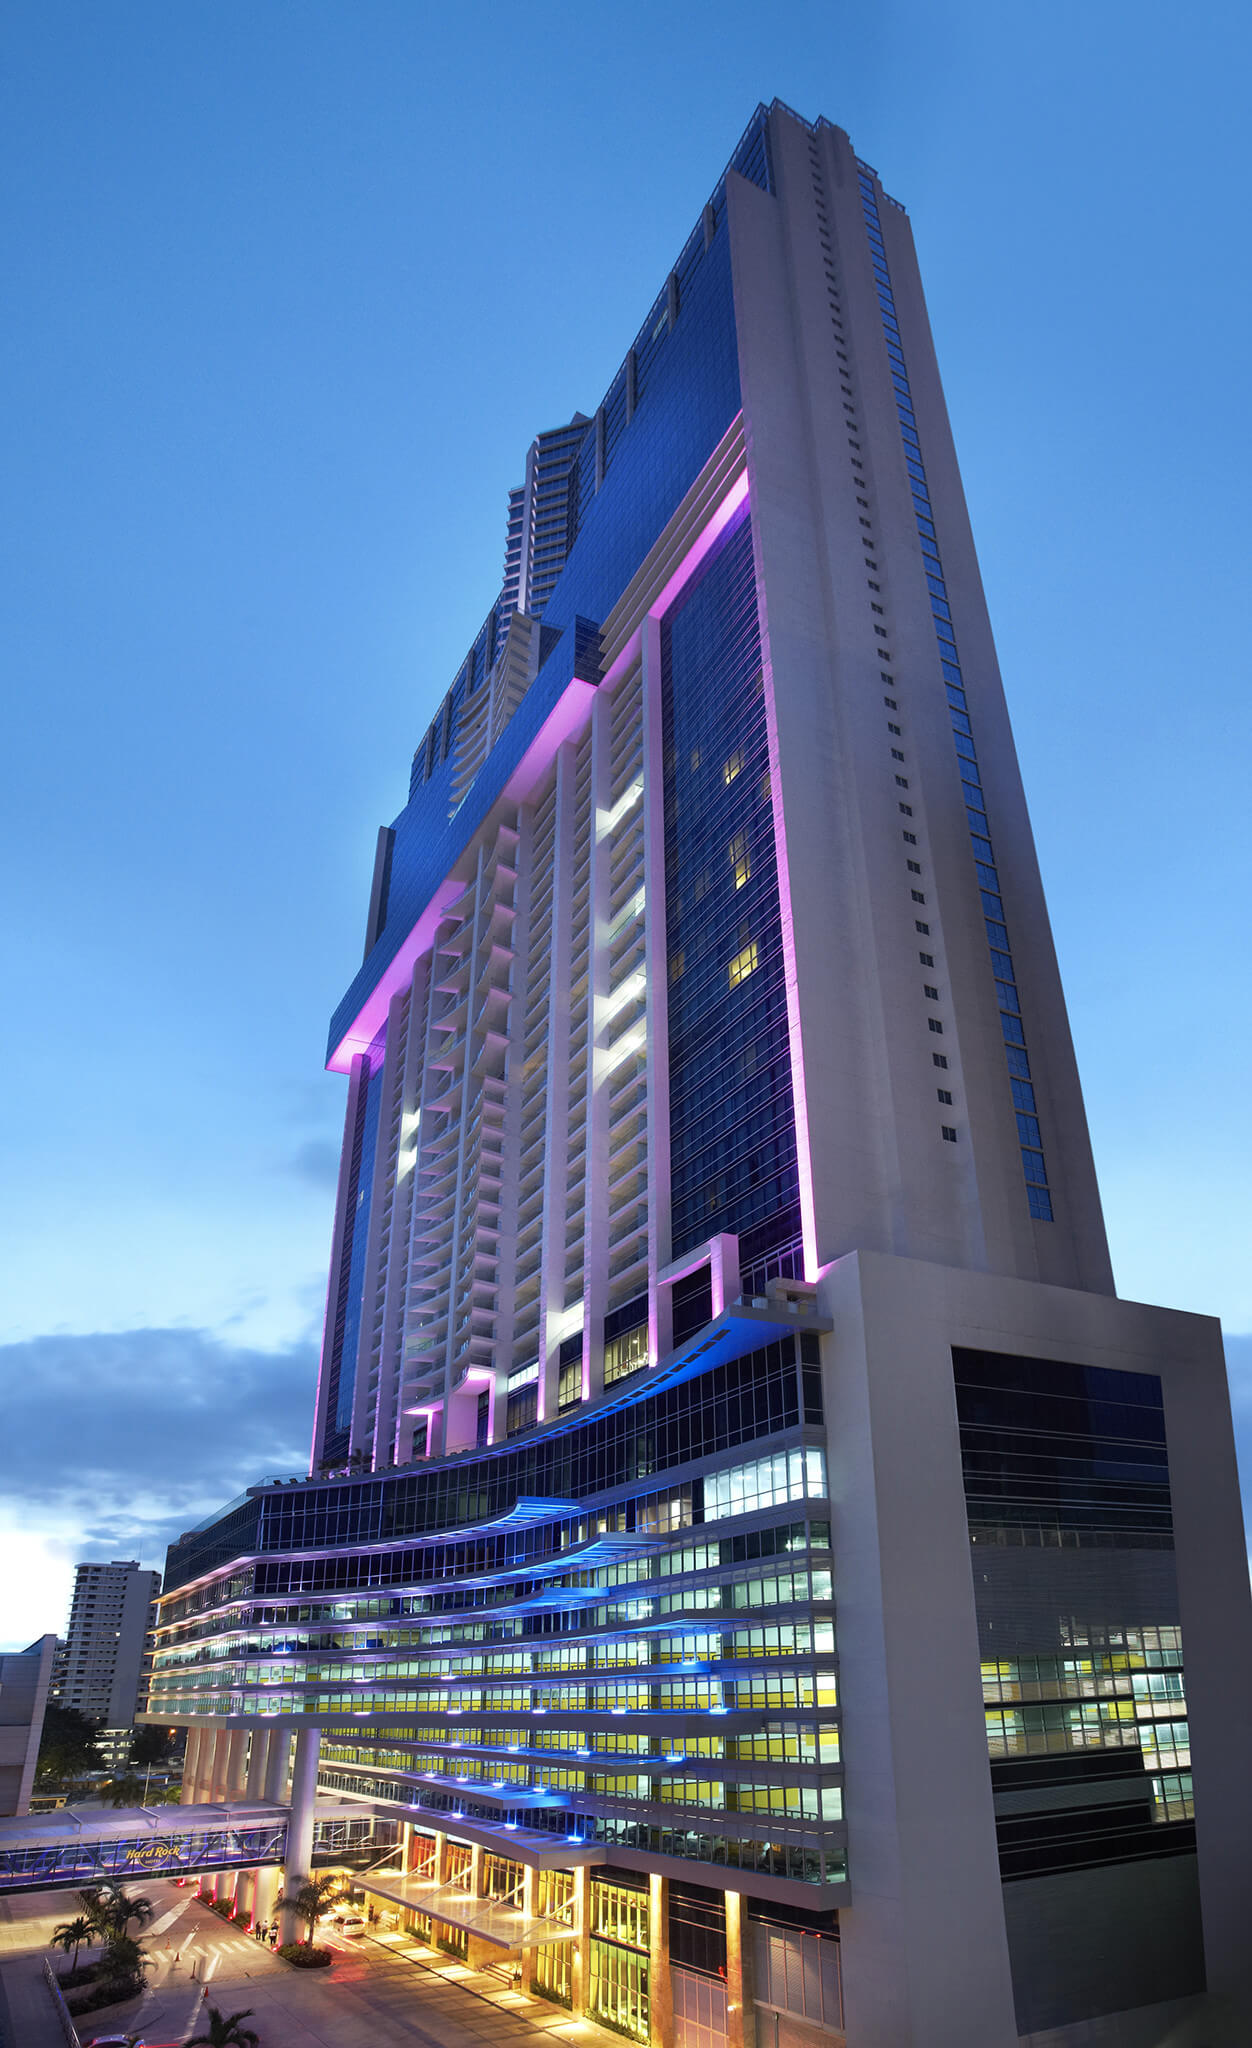 Hard Rock Hotel in Panama